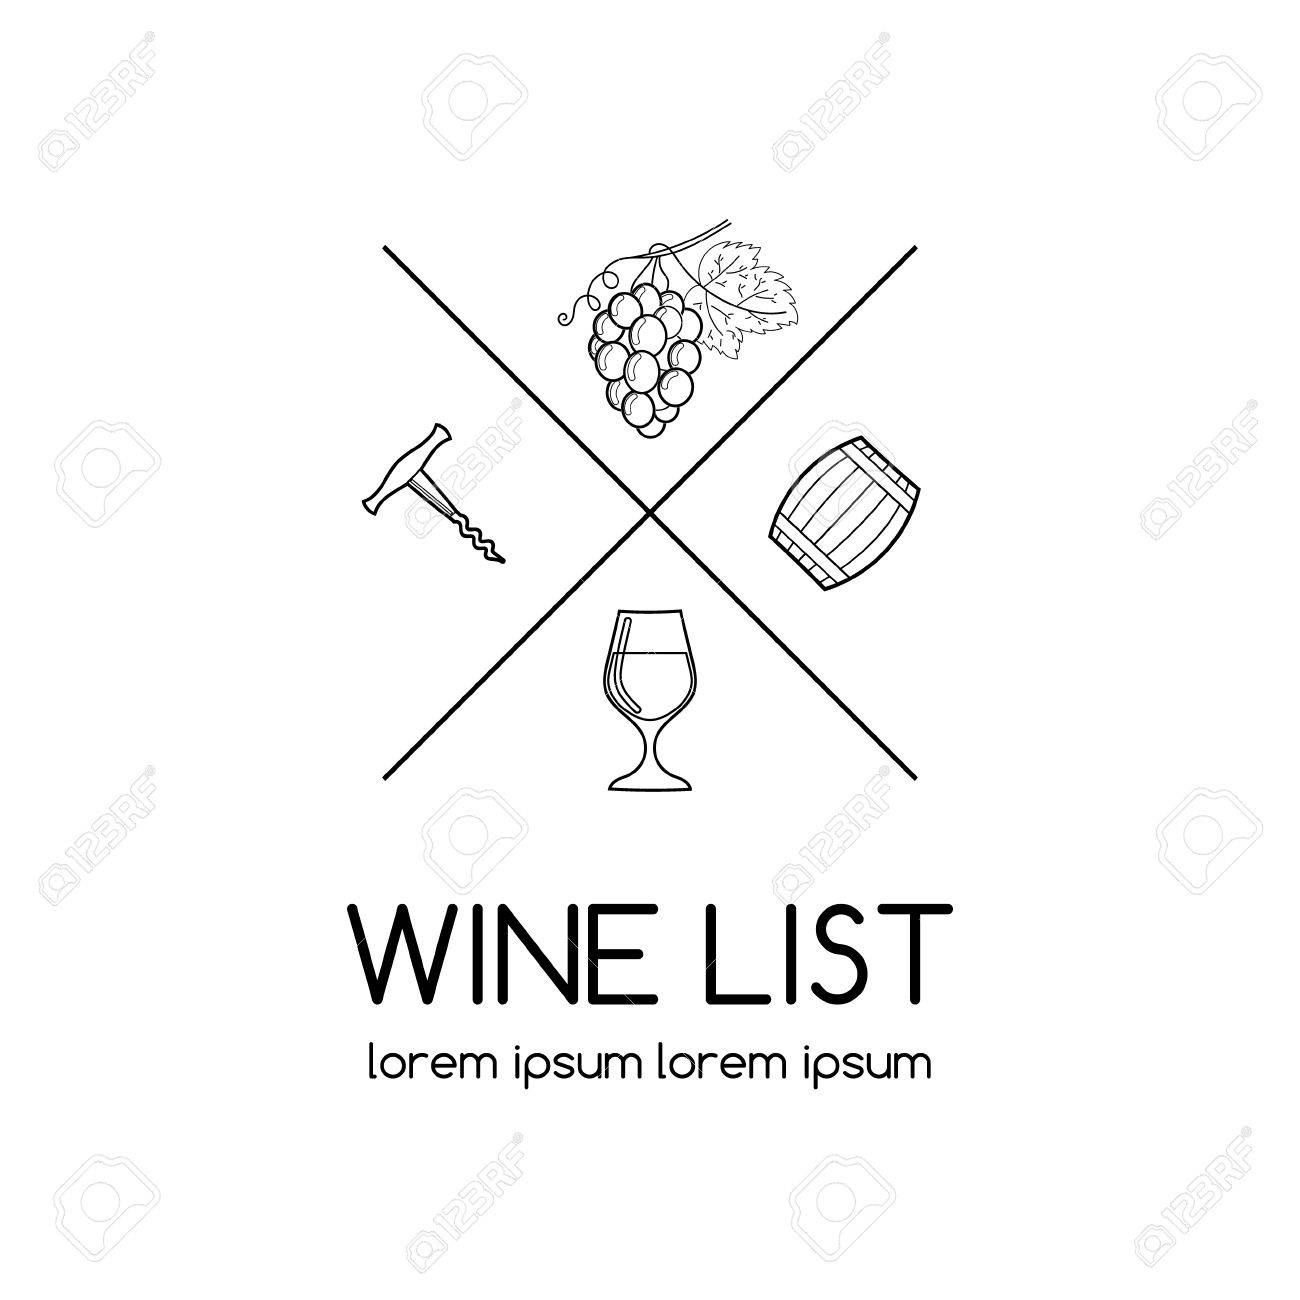 Wine or label for wine list vineyard or winery wine list wine or label for wine list vineyard or winery wine list with glass biocorpaavc Gallery